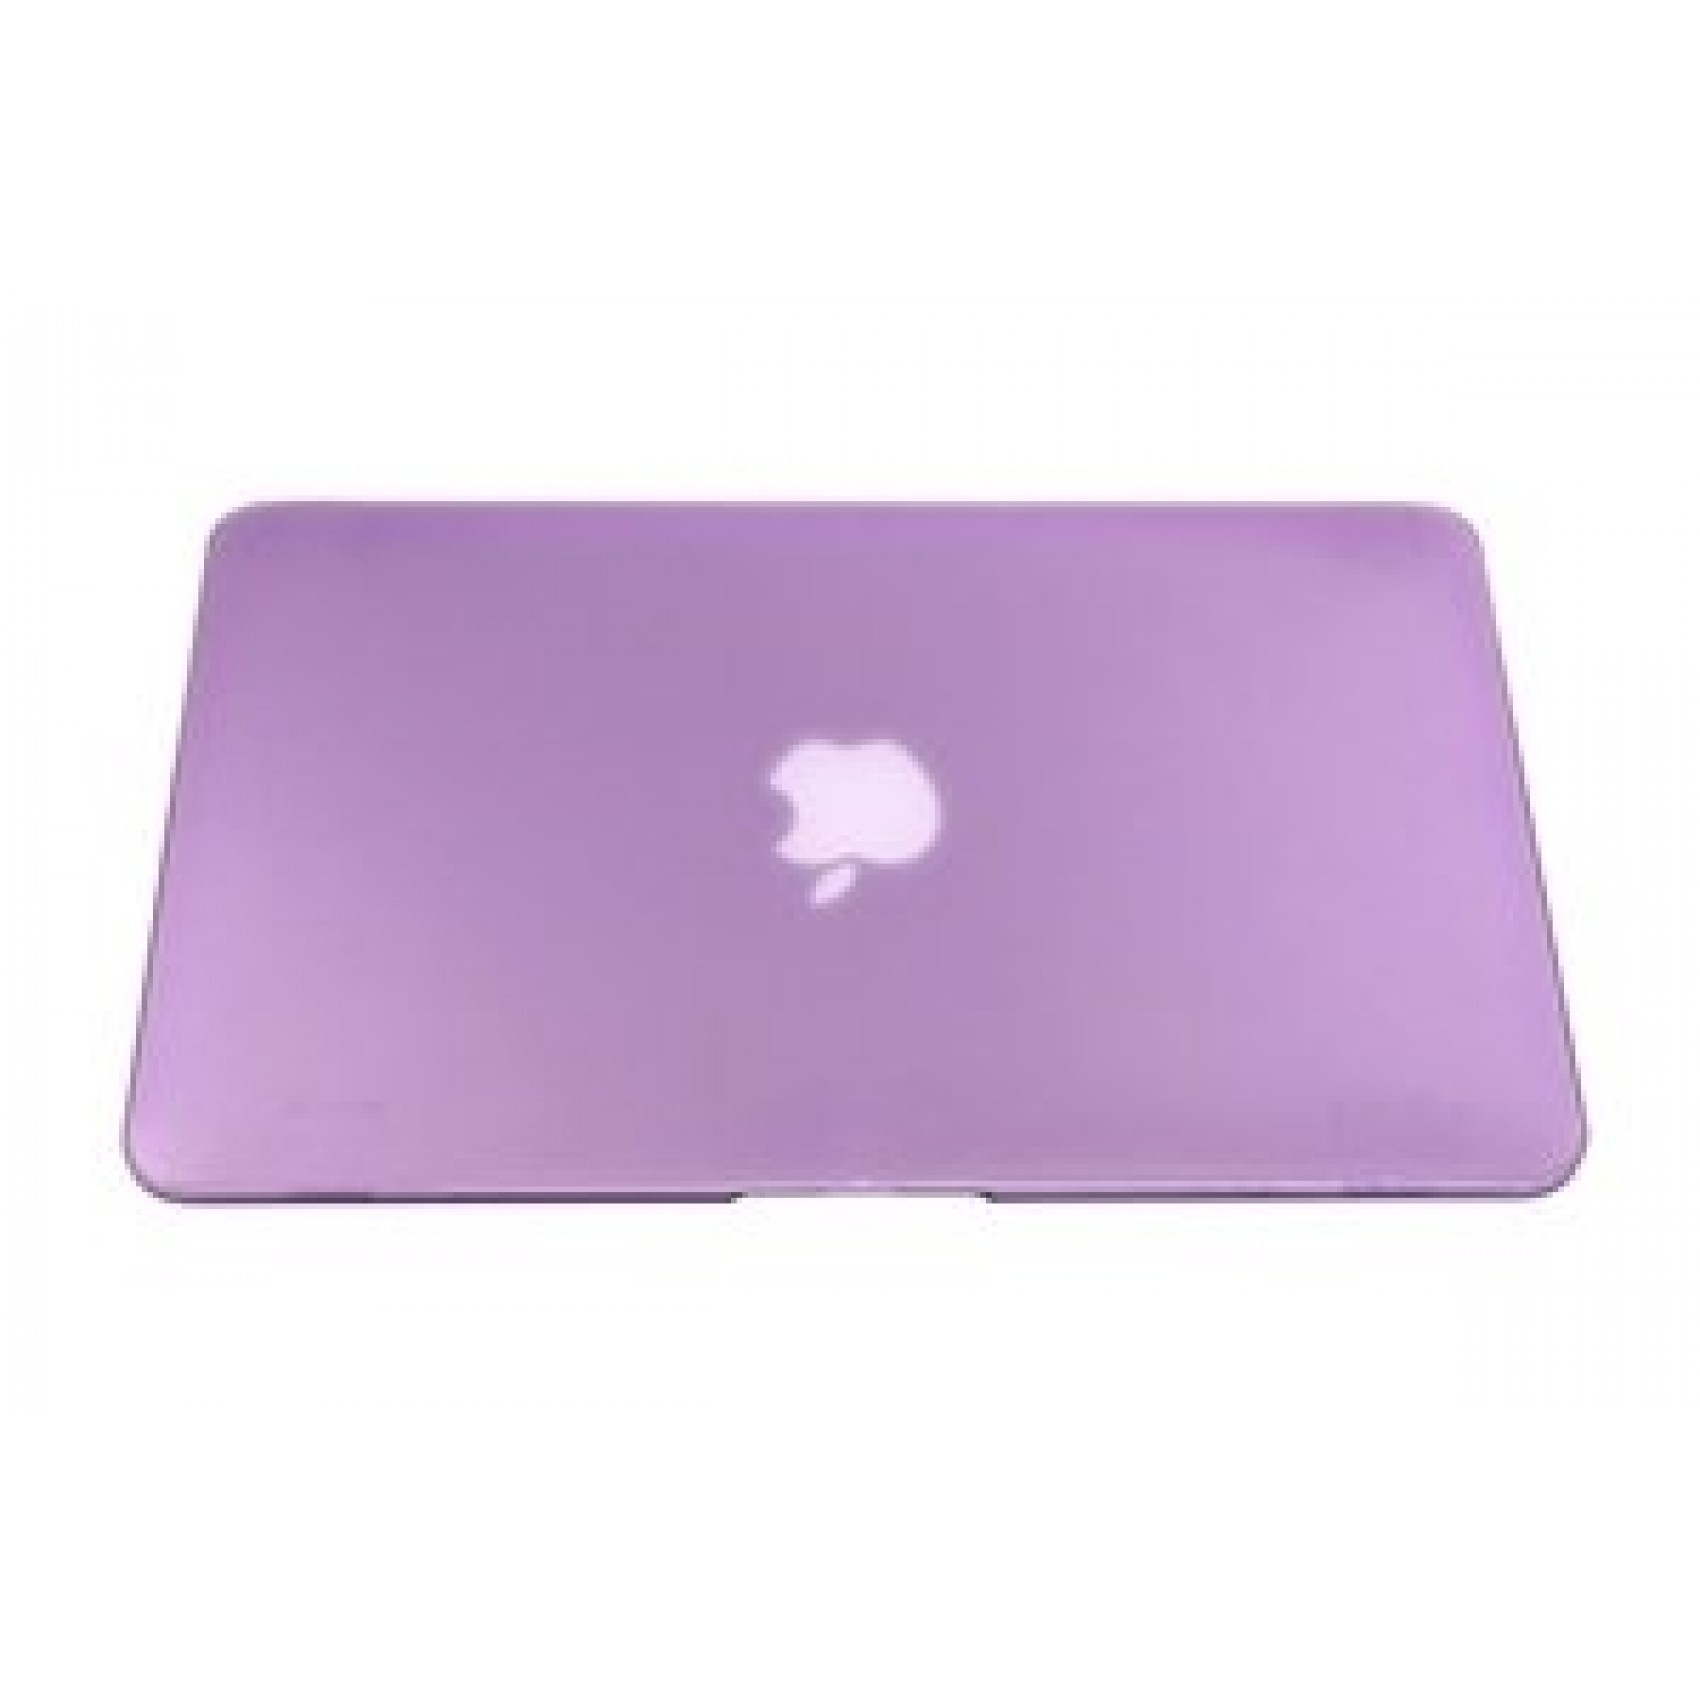 Macbook Retina 13.3 Case